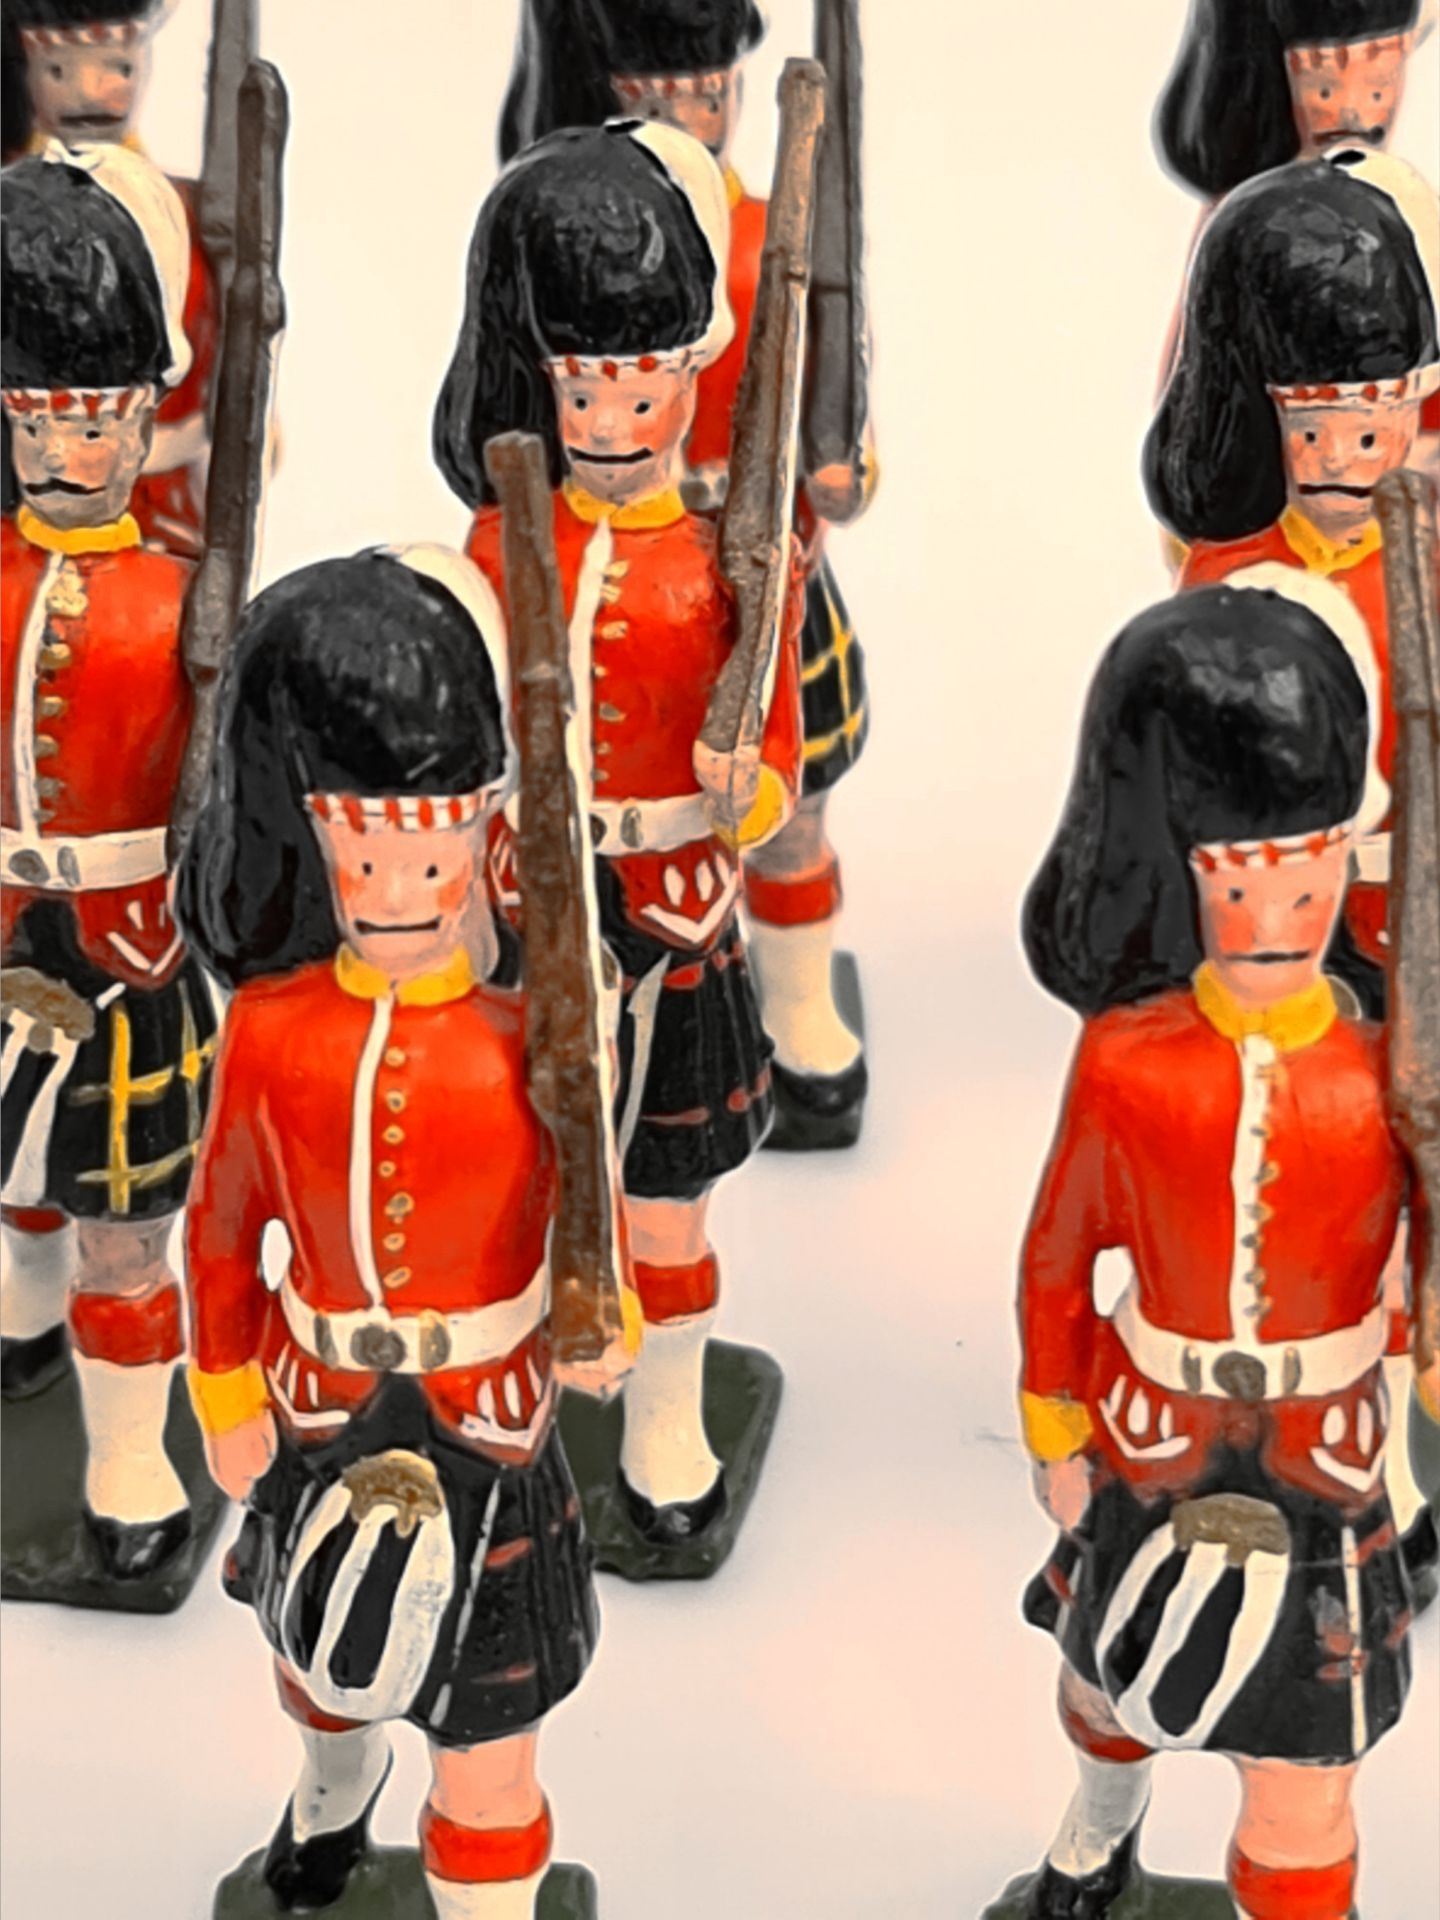 Vintage 13 Britain's Style Cast Metal Toy Soldiers 6cm Tall - Image 2 of 2